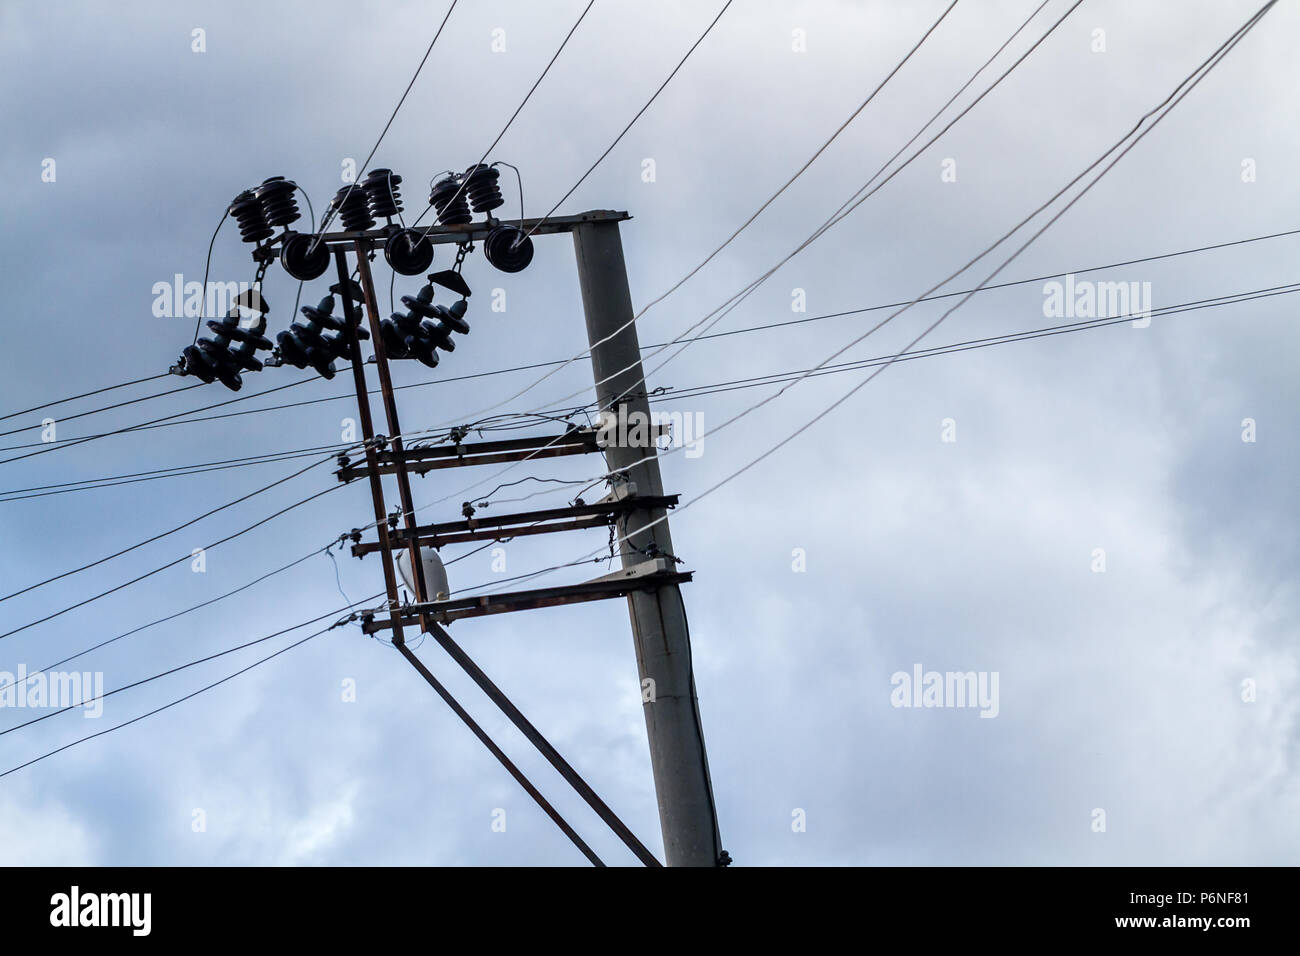 electrical wire support column stock photos \u0026 electrical wire Residential Wiring electric power distribution lines with cement concrete pole stock image